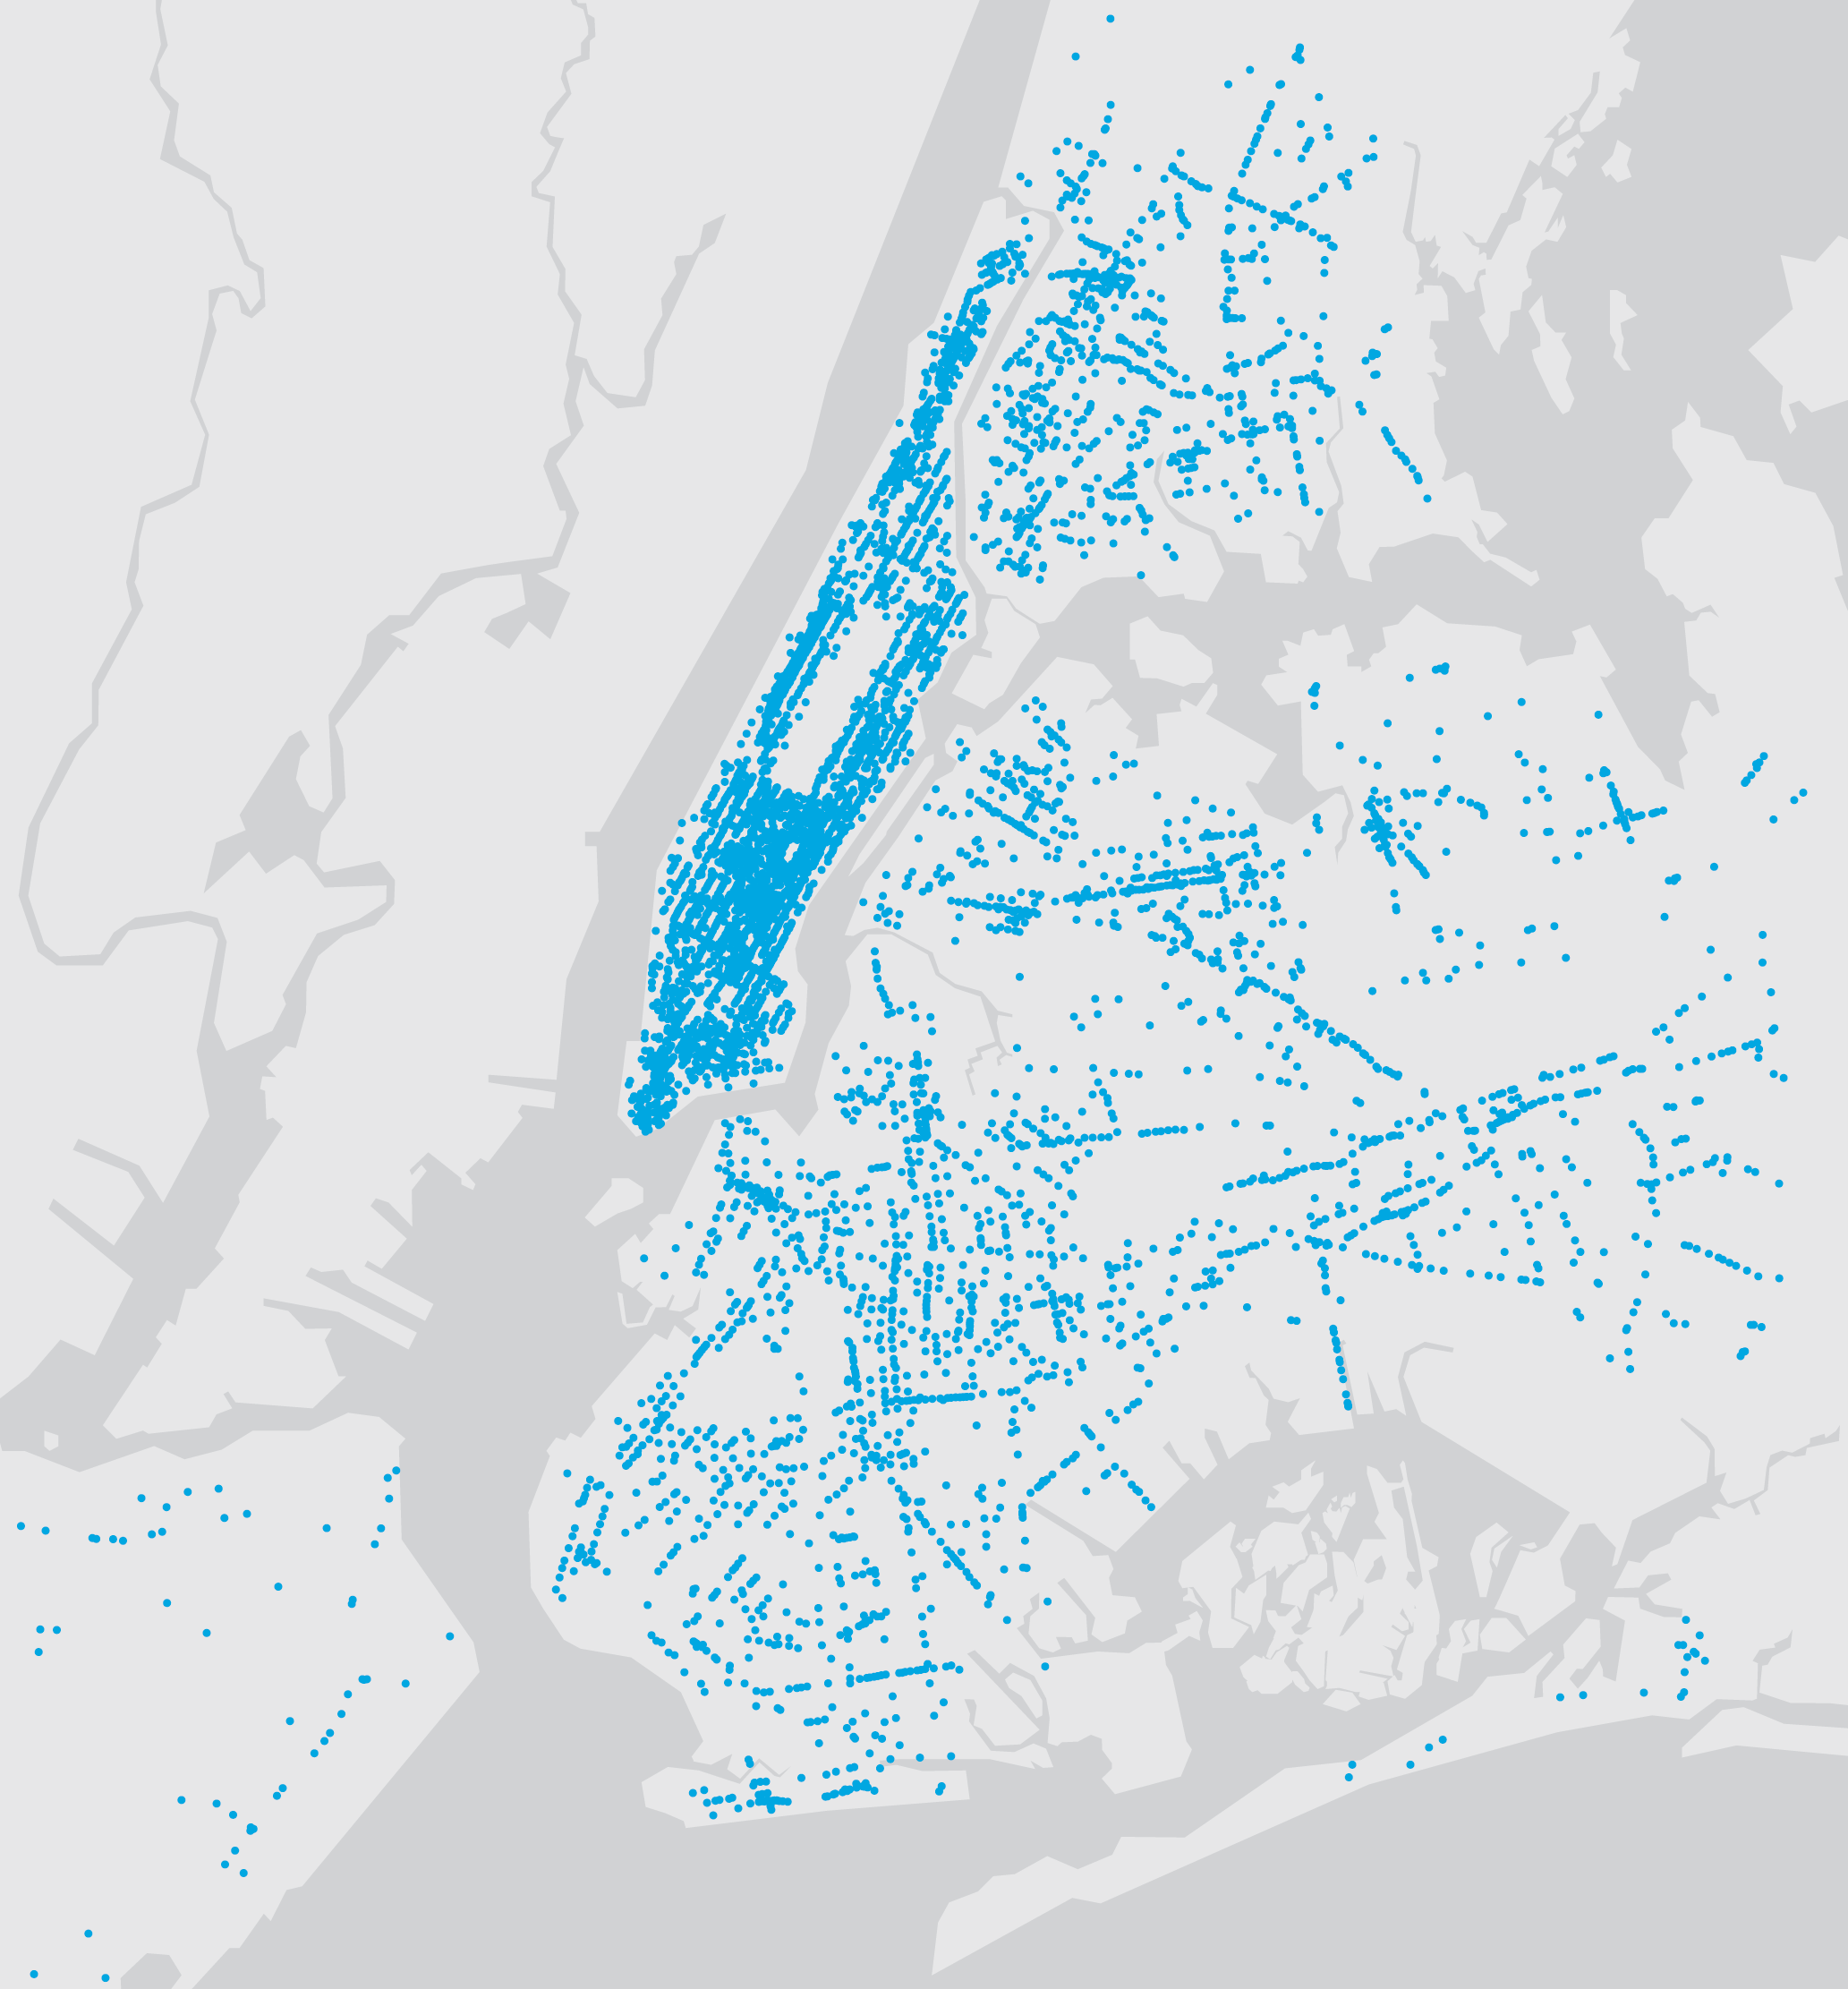 NYC_Payphones_Map